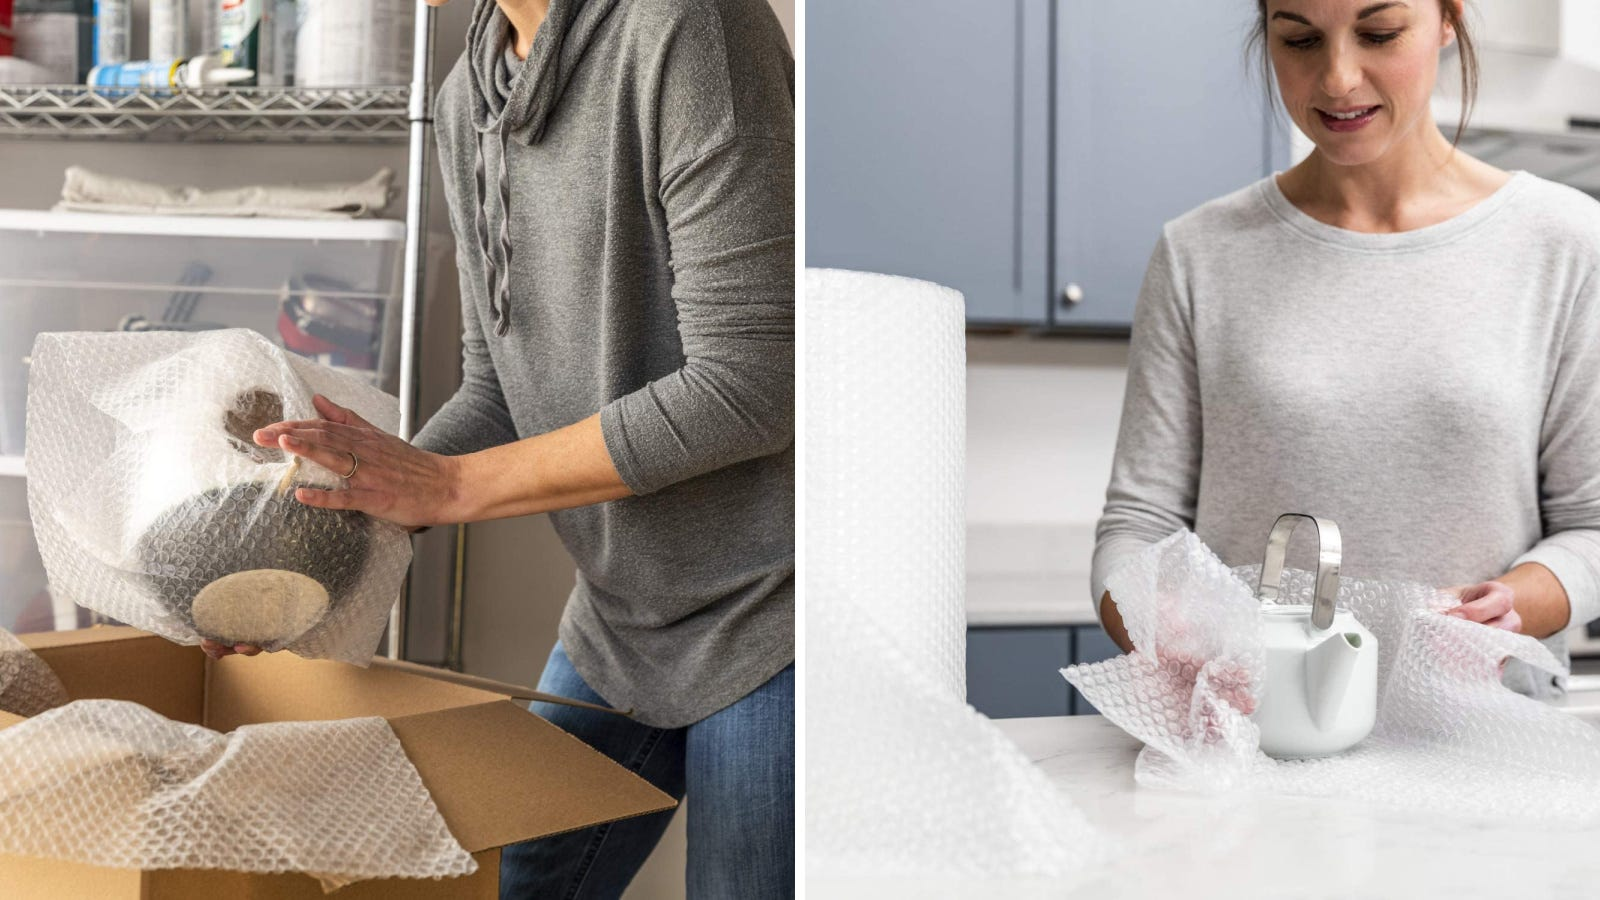 Two images of Duck brand bubble wrap being usedf to wrap dishes that are being packed in boxes.